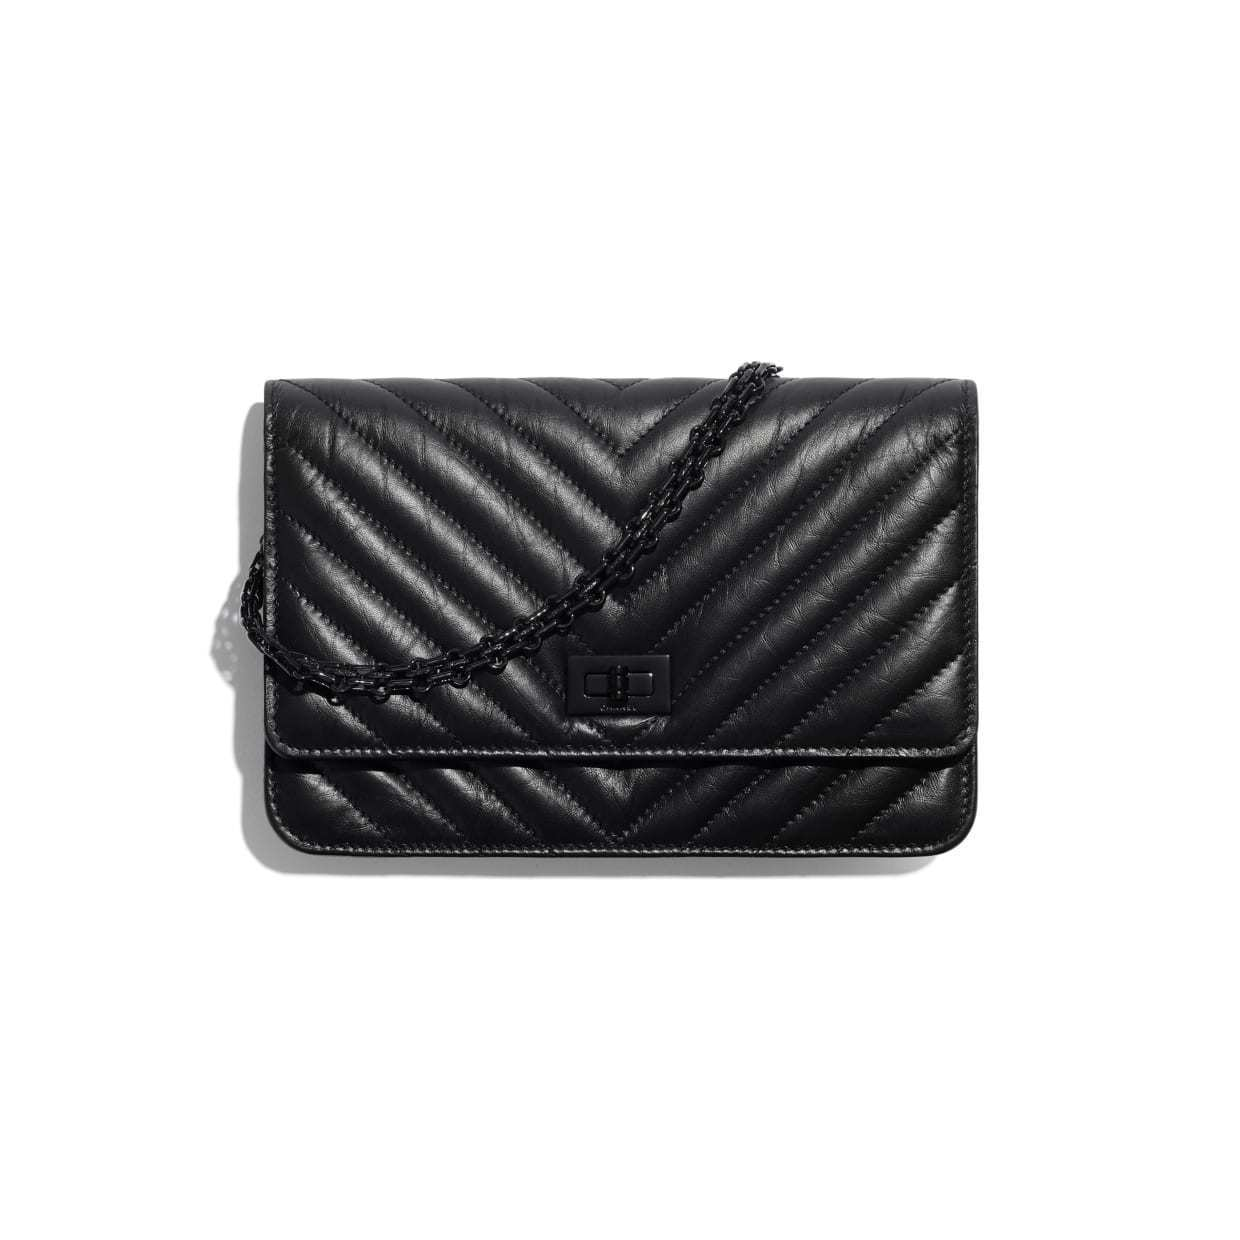 CHANEL CHANEL ☆2.55 wallet on chain ☆A70328 Y82340 94305